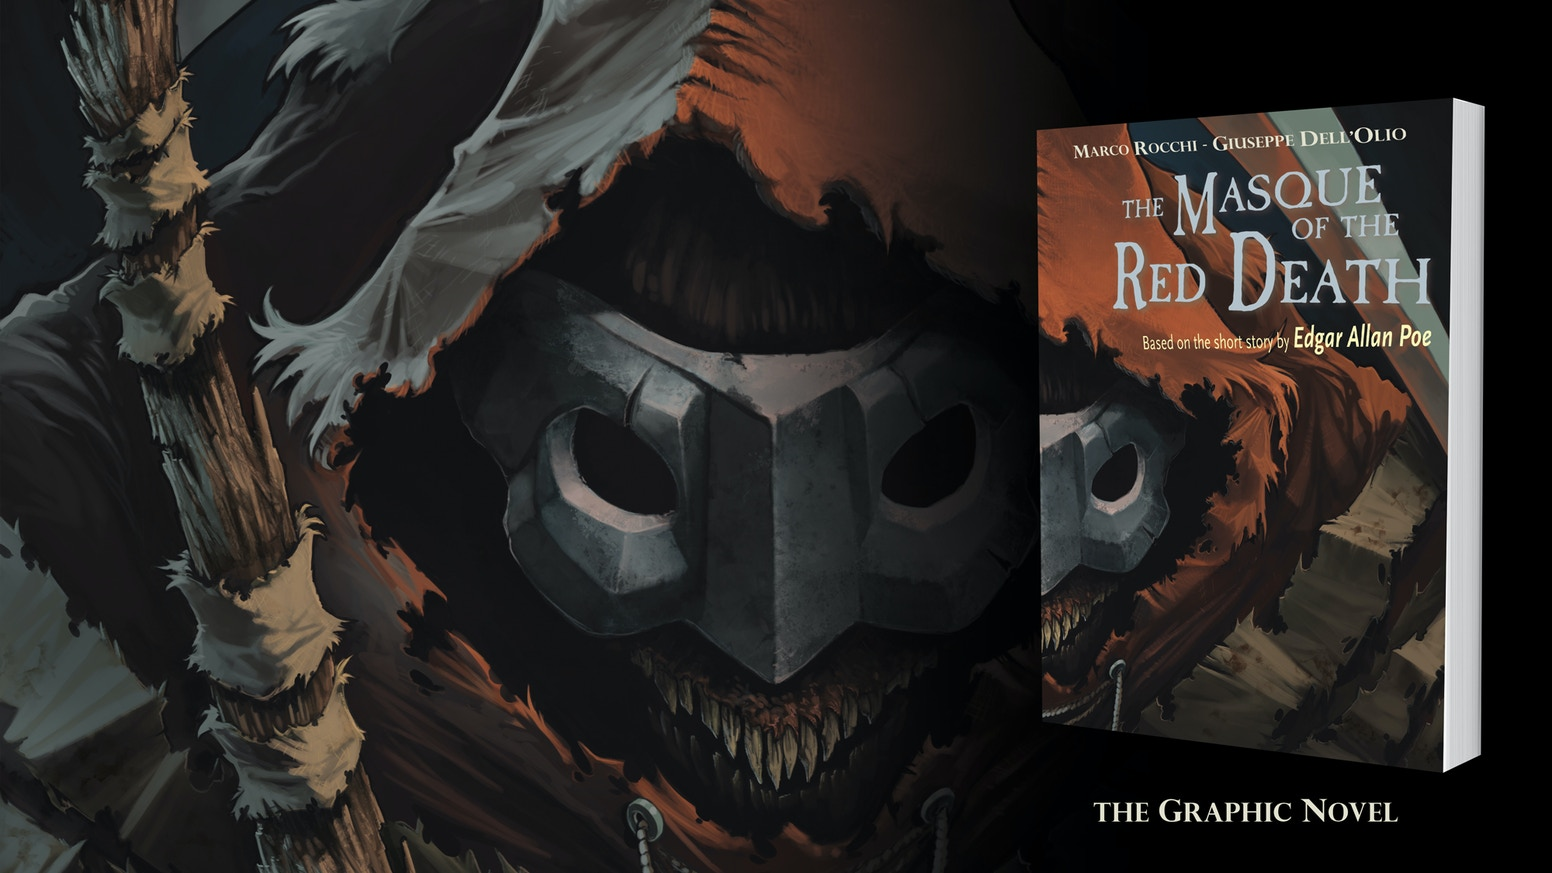 The Graphic Novel based on the short story by Edgar Allan Poe!